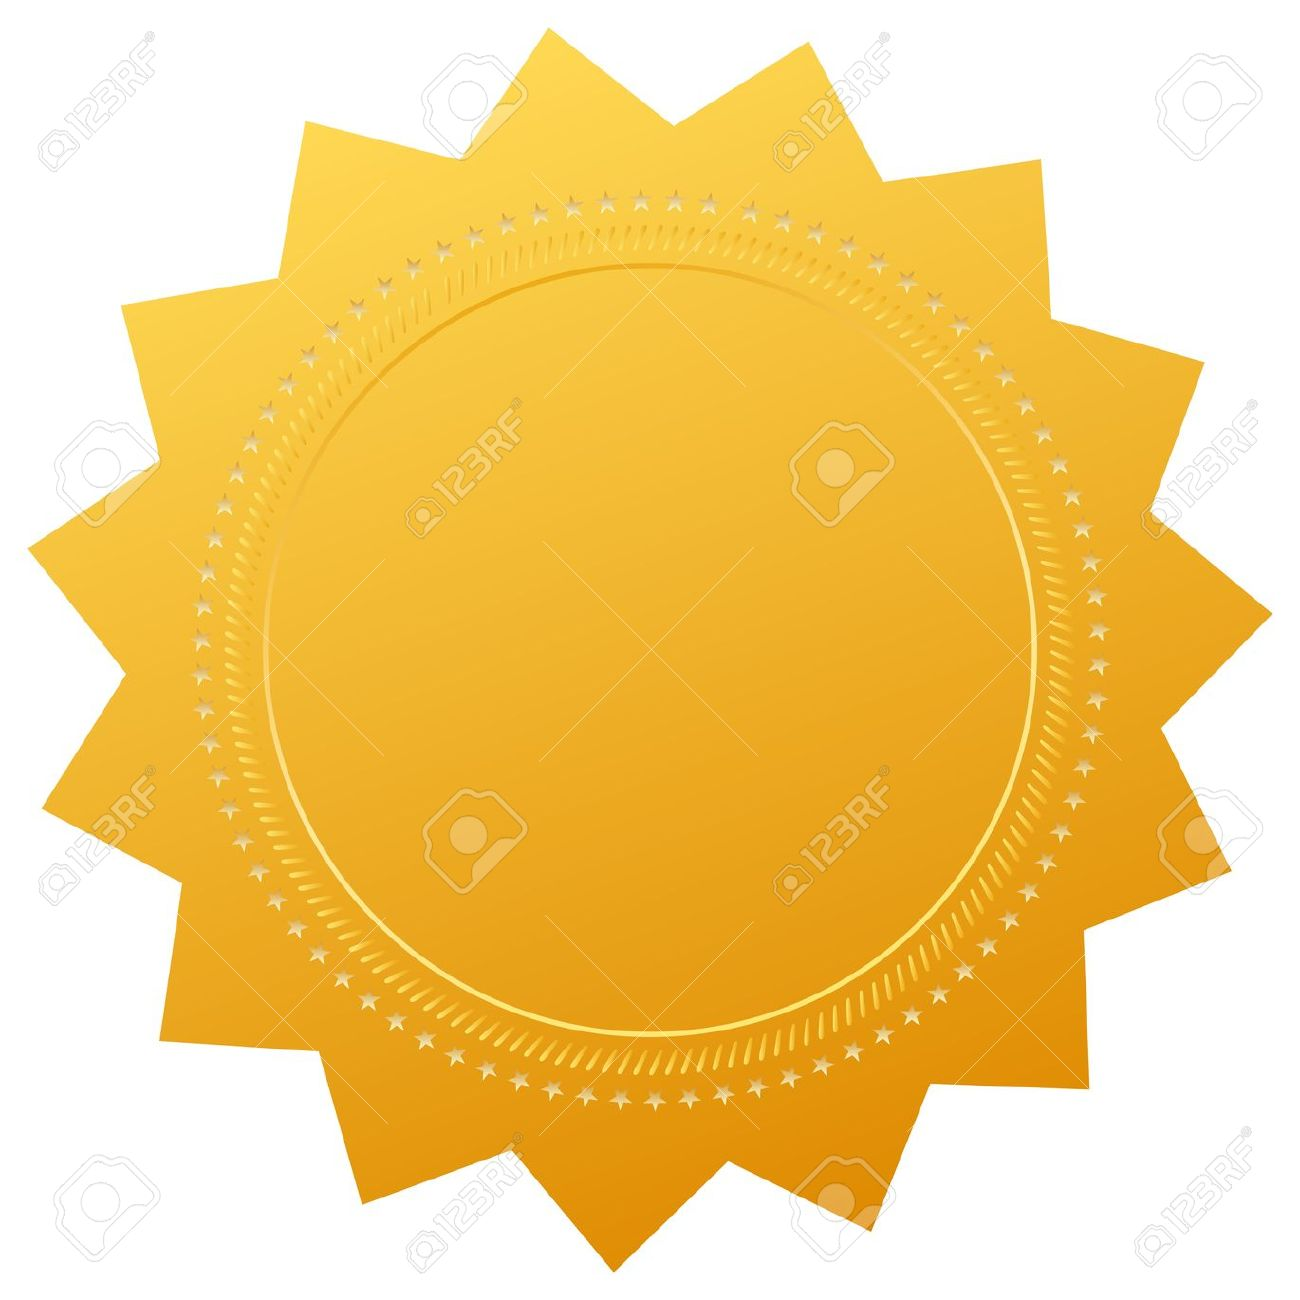 Blank Gold Price Tag Stock Photo Picture And Royalty Free Image